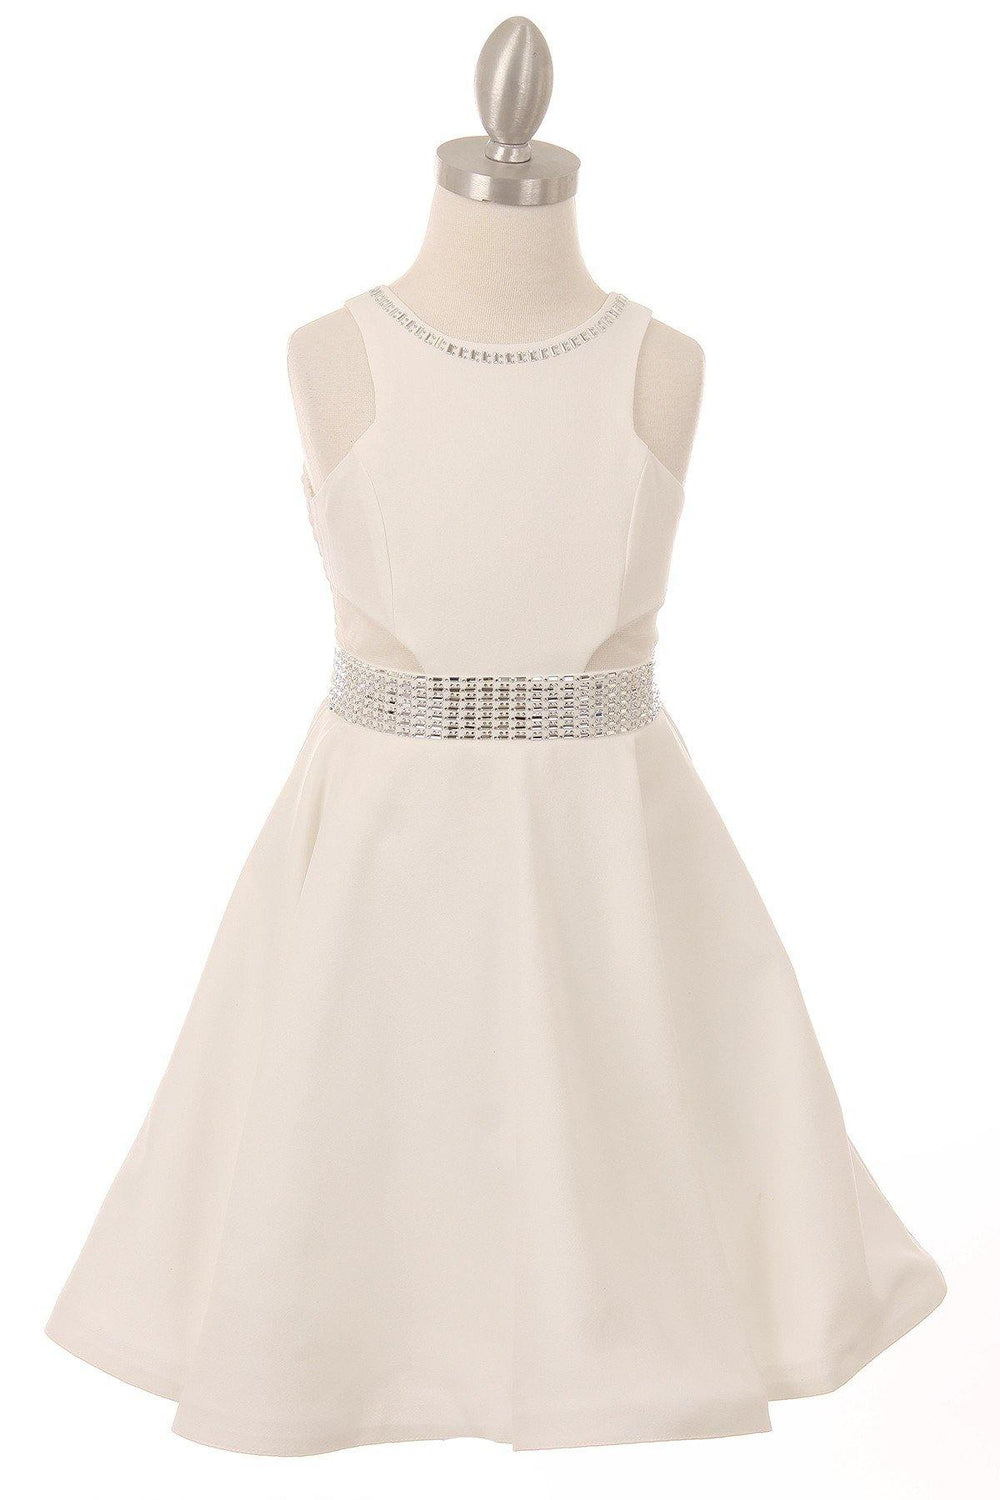 Short Sparkle Flower Girl Dress - The Dress Outlet Off White